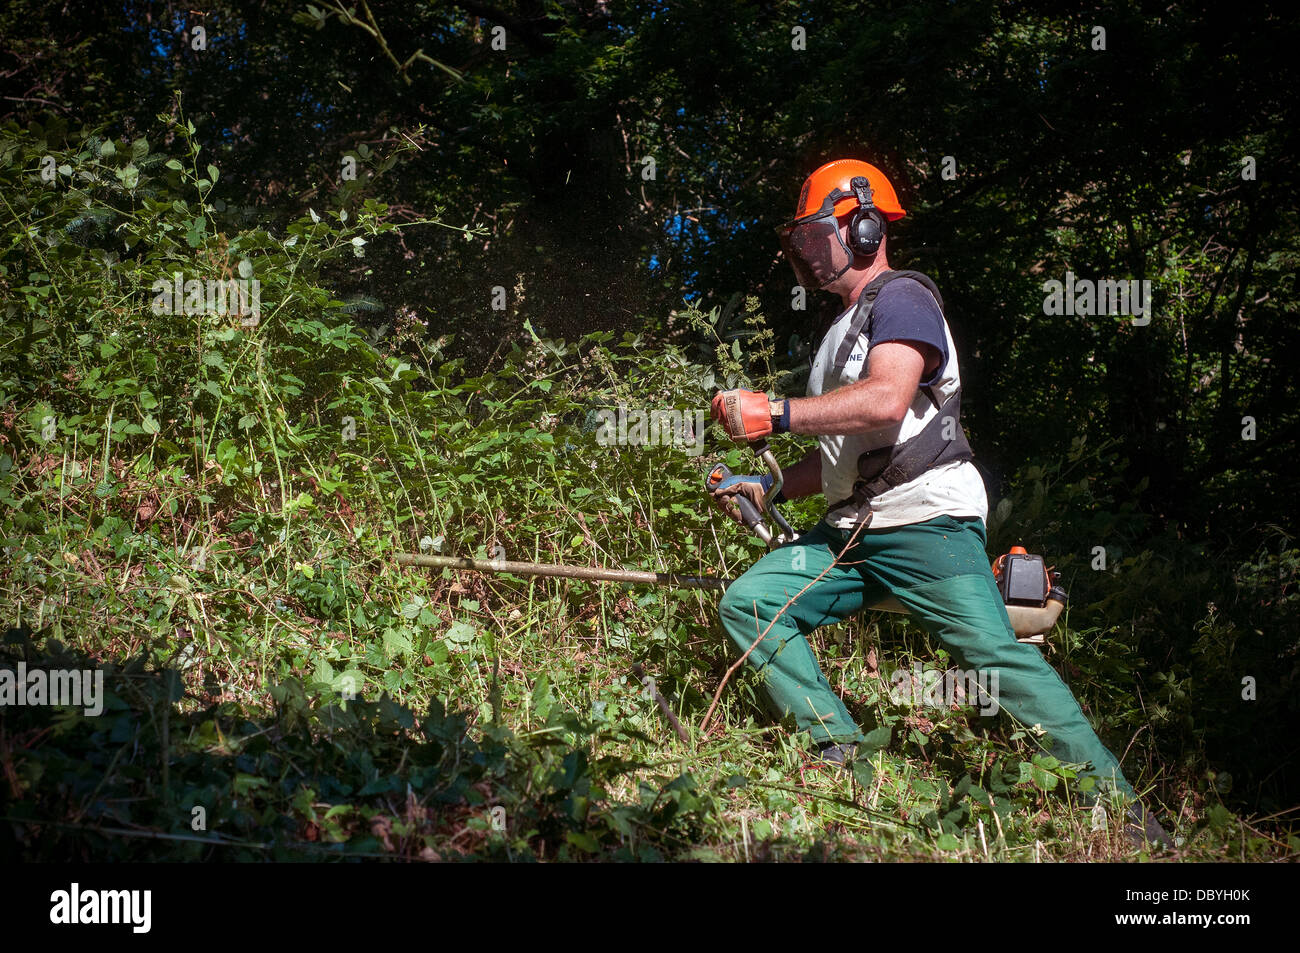 strimming,safety equipment,strimmer,strimmers,farmer on tractor, united kingdom, tree, meadow, trail, grazing, tourist - Stock Image